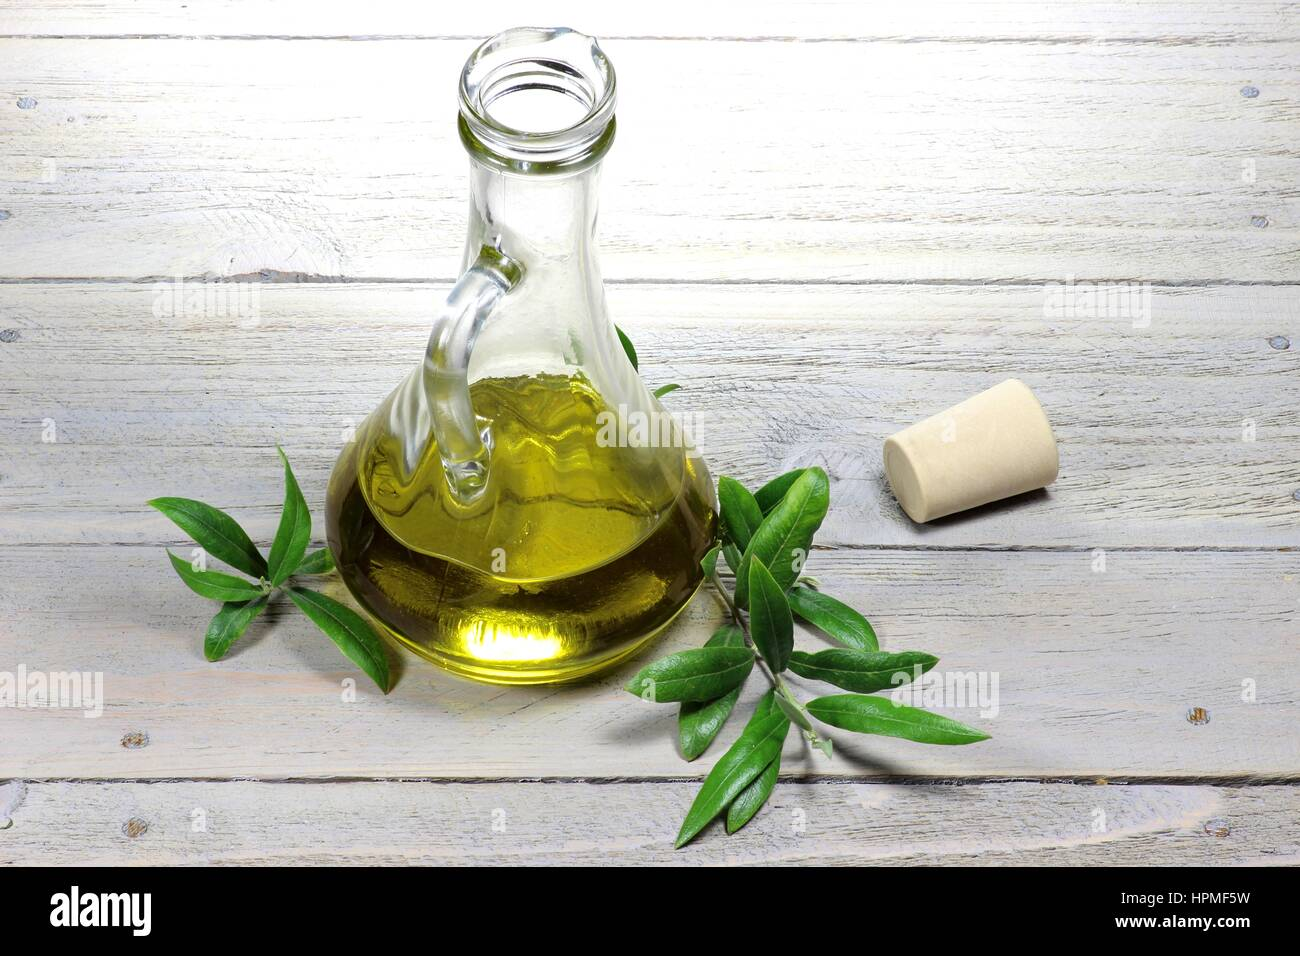 virgin olive oil in a glass carafe on wooden background - Stock Image